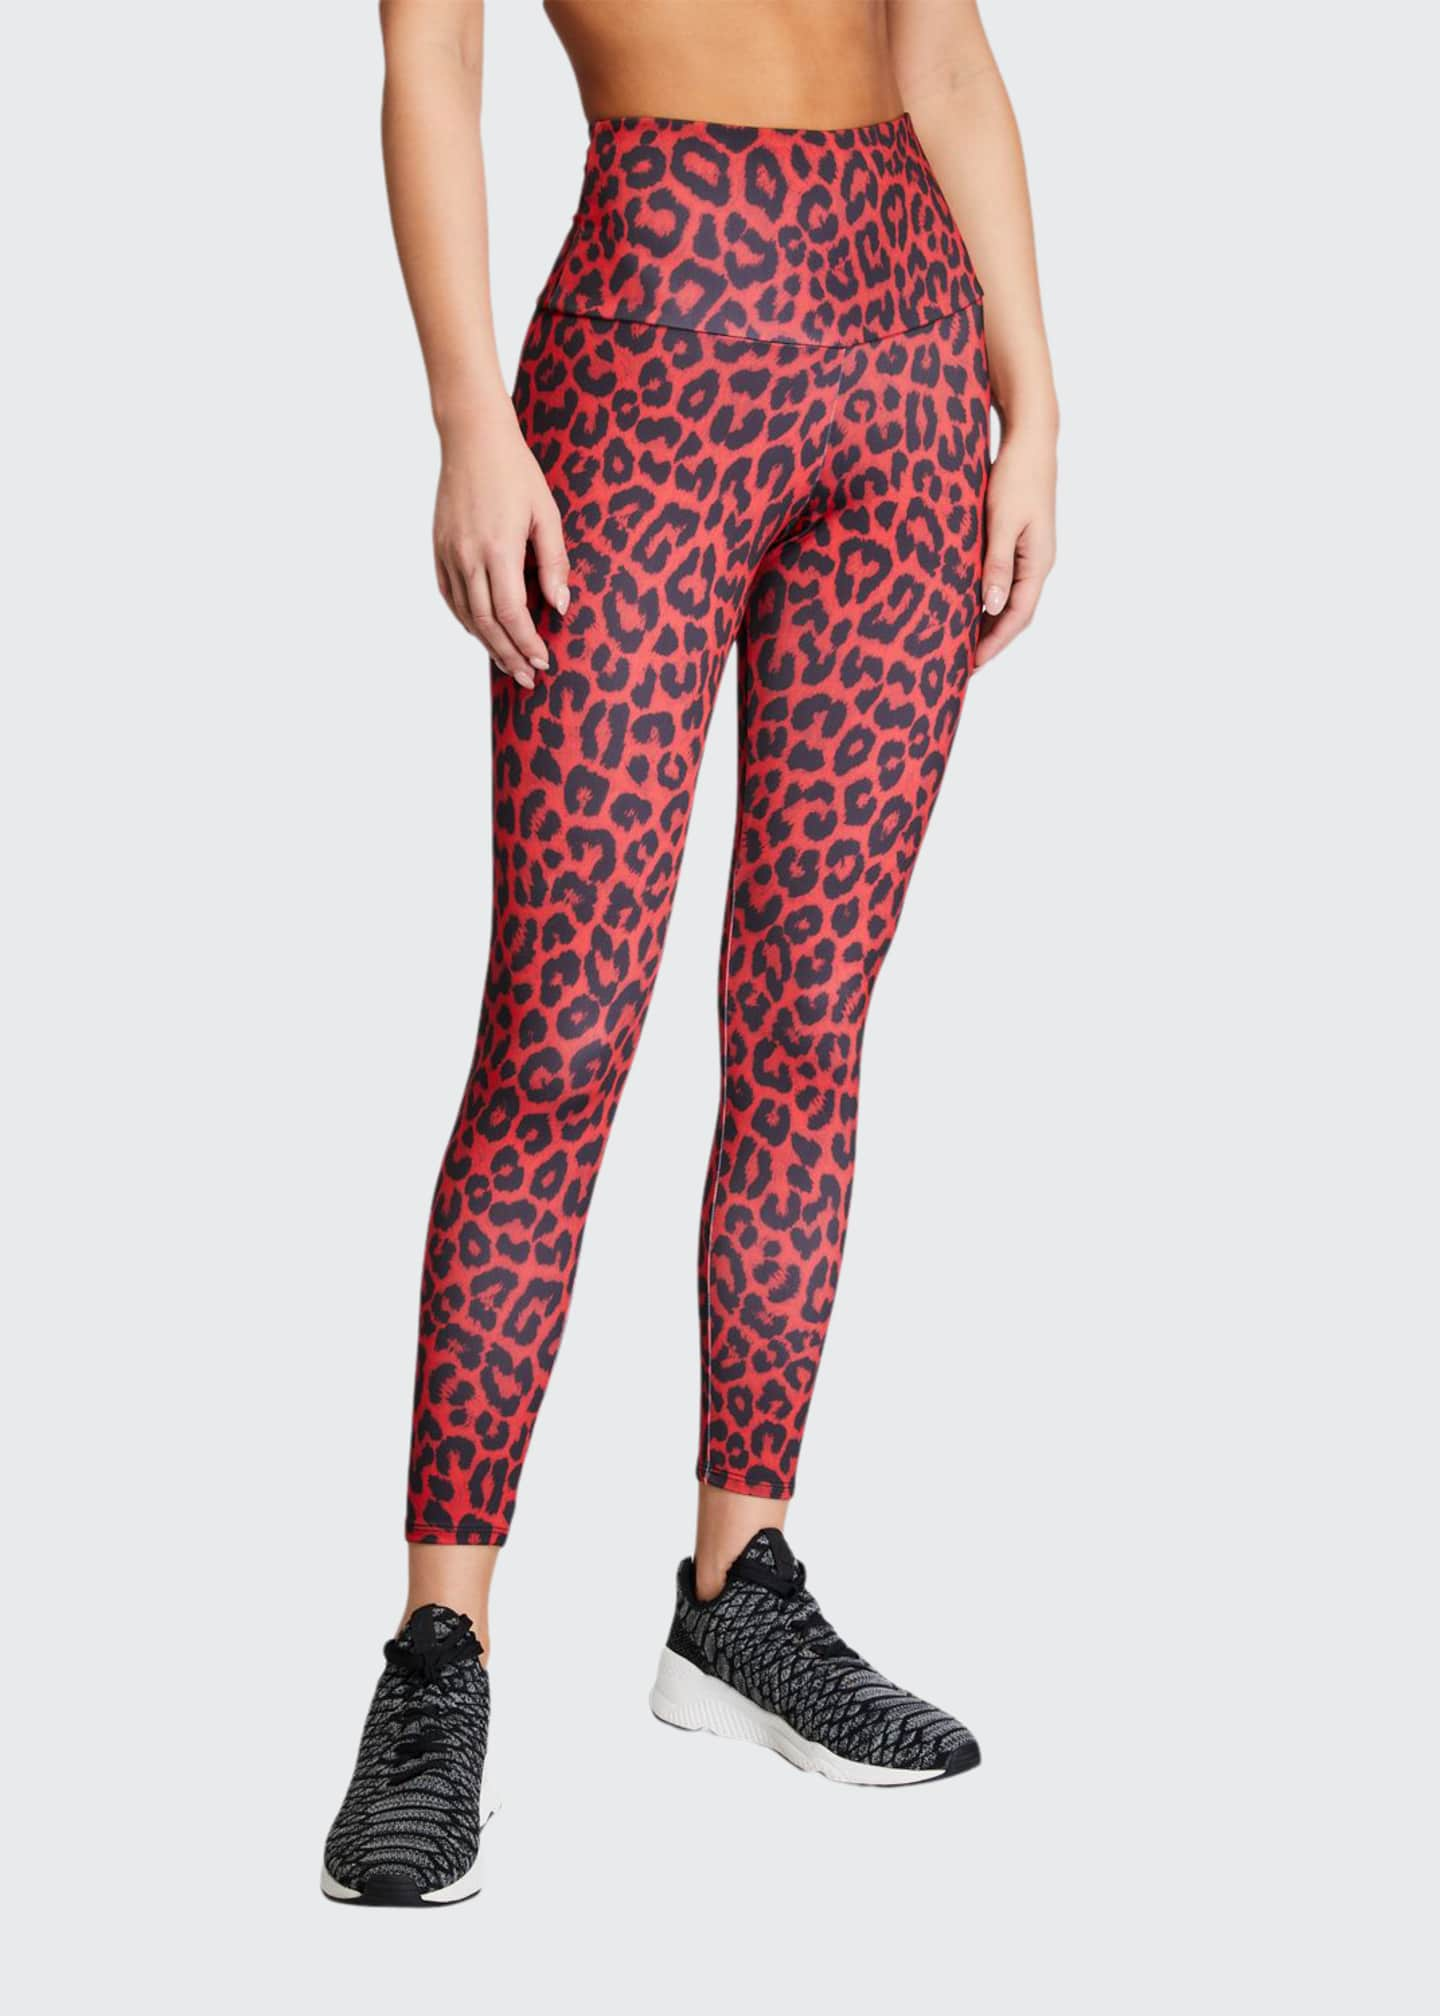 Onzie High Basic Midi Leopard Leggings